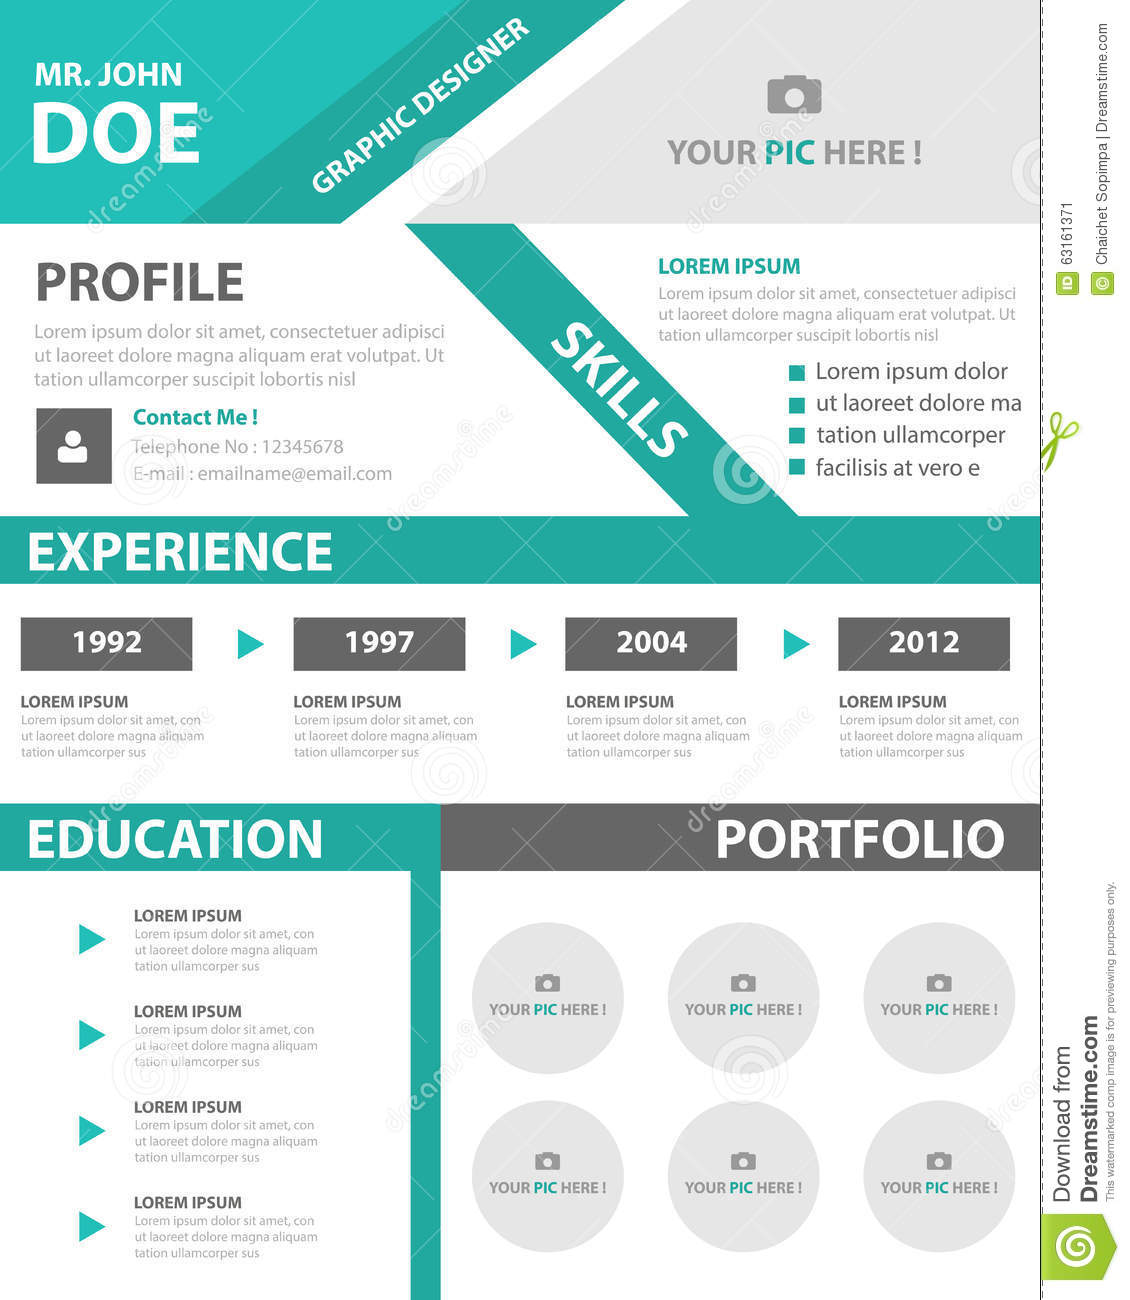 green smart creative resume business profile cv vitae template layout flat design for job